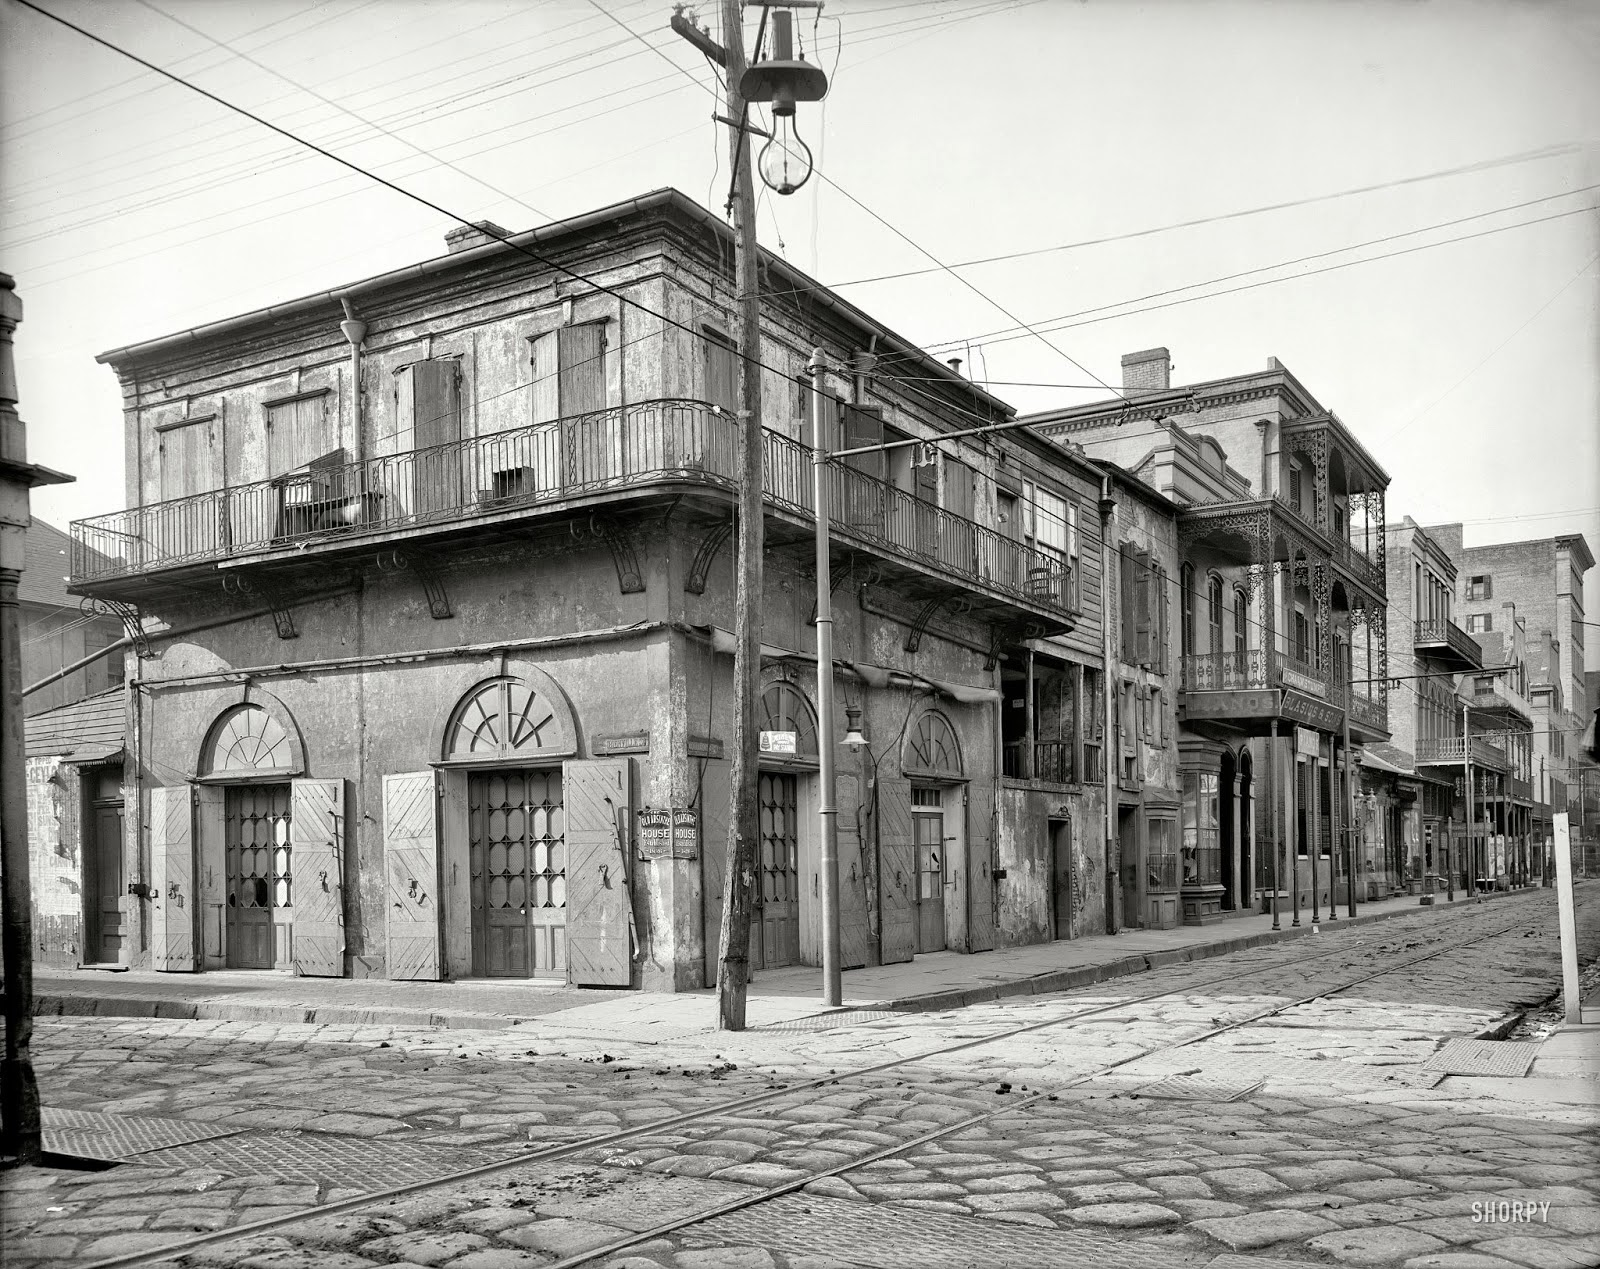 ... Amazing Vintage Photos of New Orleans from between the 1900s and 1910s